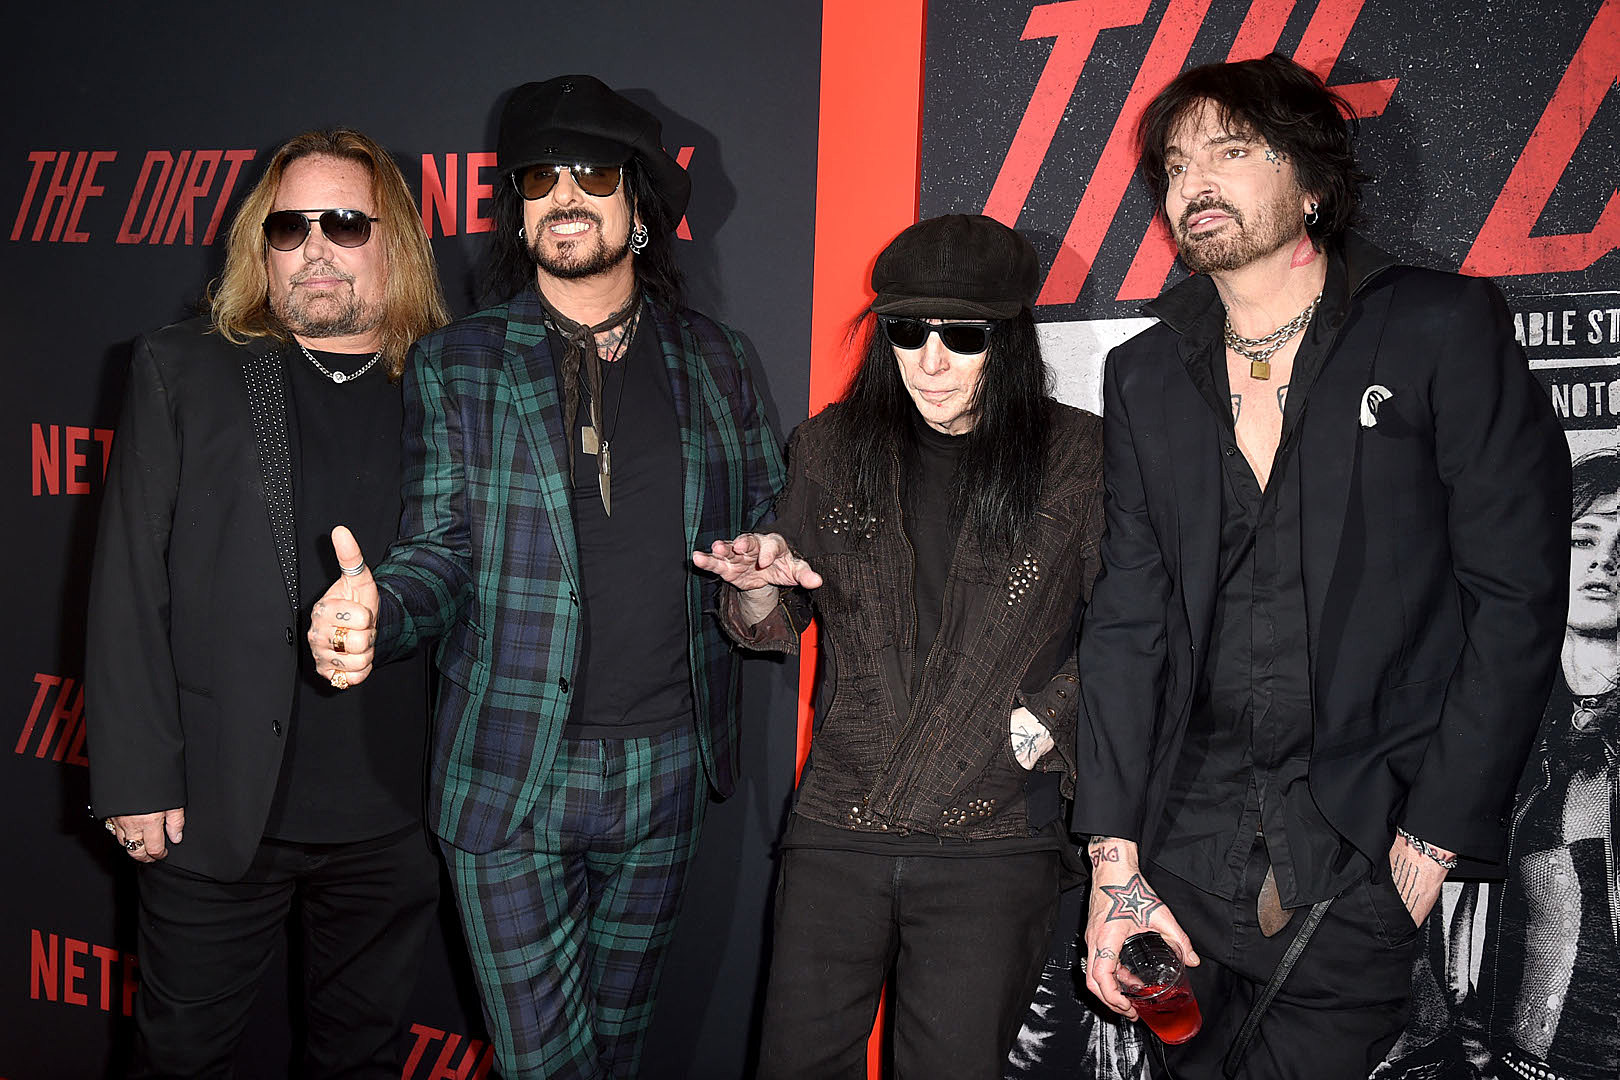 Motley Crue + Netflix Sued by 'The Dirt' Crew Member Over Severe Injuries